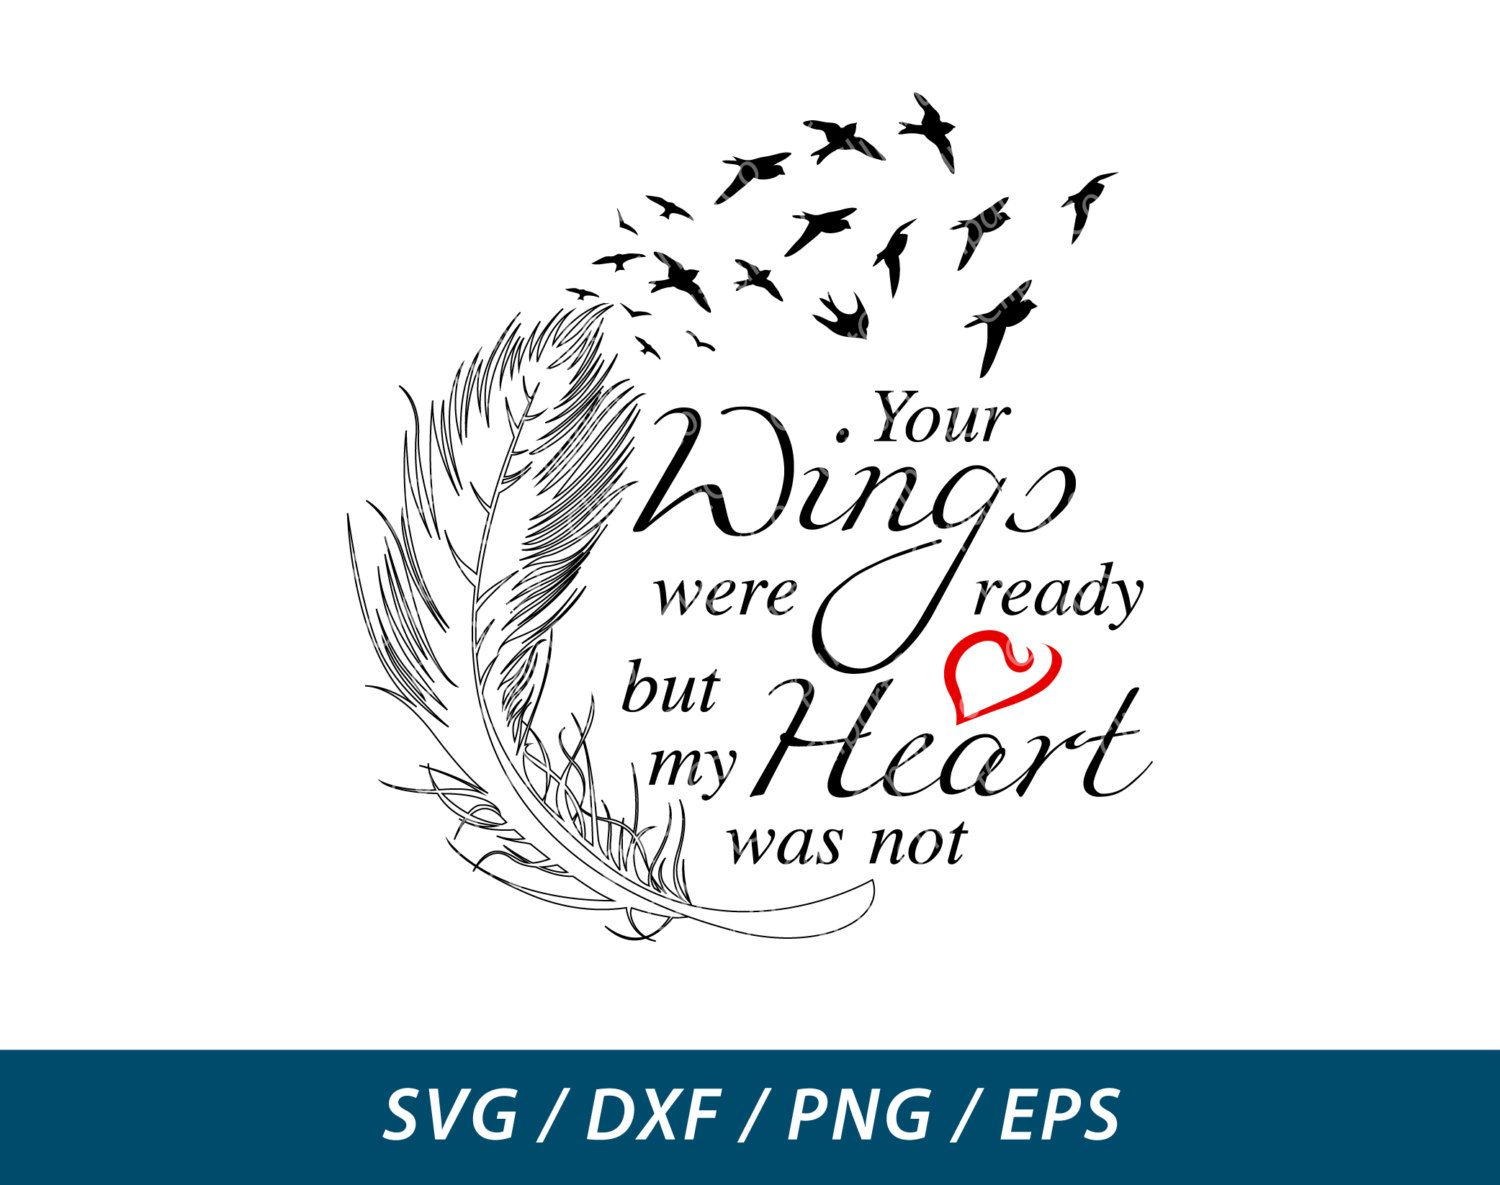 Your wings were ready but my heart was not svg dxf png for Your wings were ready but my heart was not tattoo